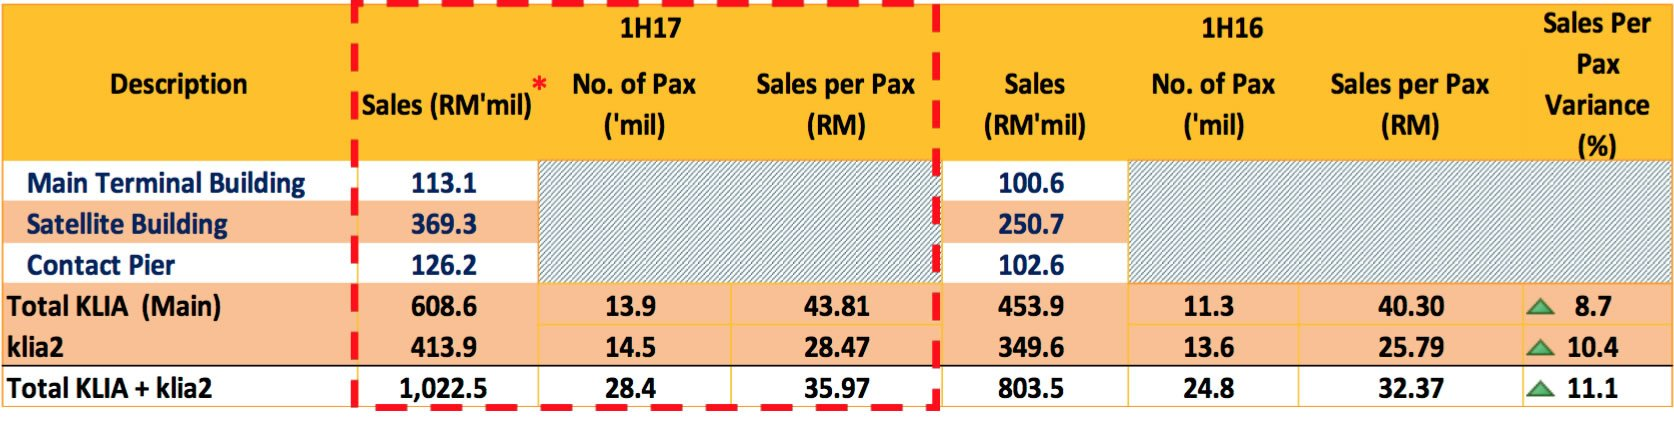 retail and F&B sales at KLIA and klia 2